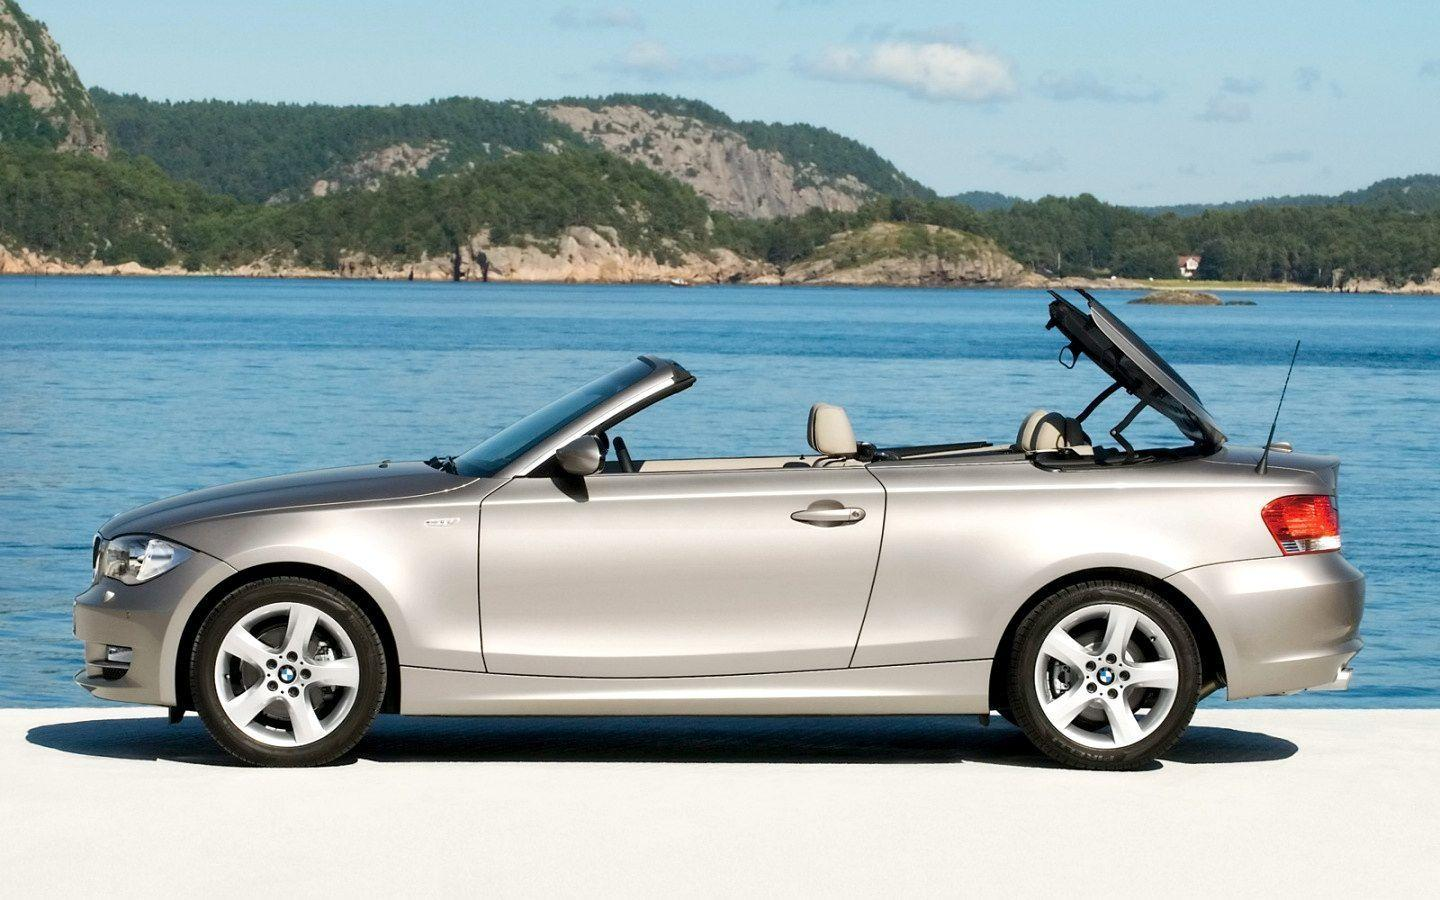 2008 BMW 1 Series Convertible Wallpaper 17 - 1440x900